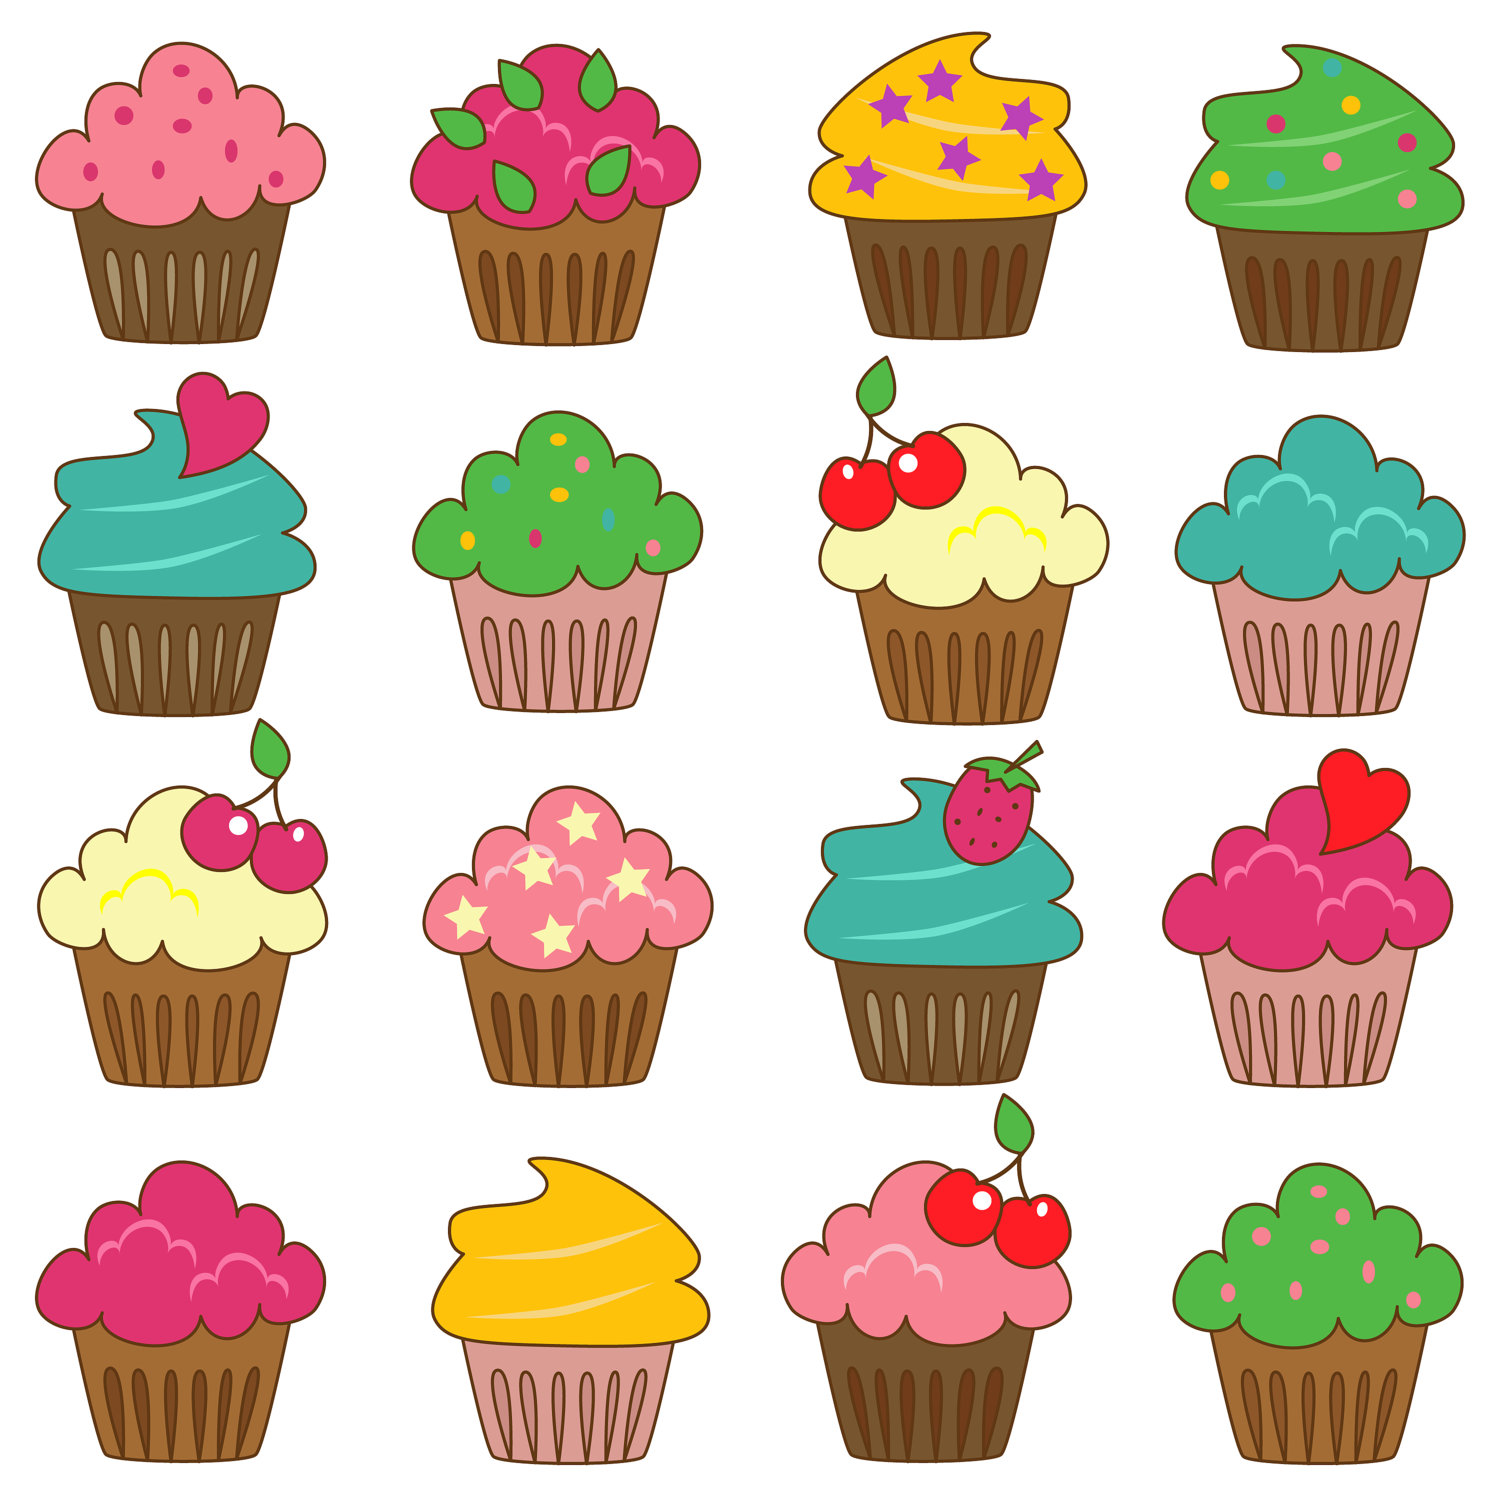 Cute Cupcake Images : Cute Cupcake Outline Clipart - Clipart Suggest